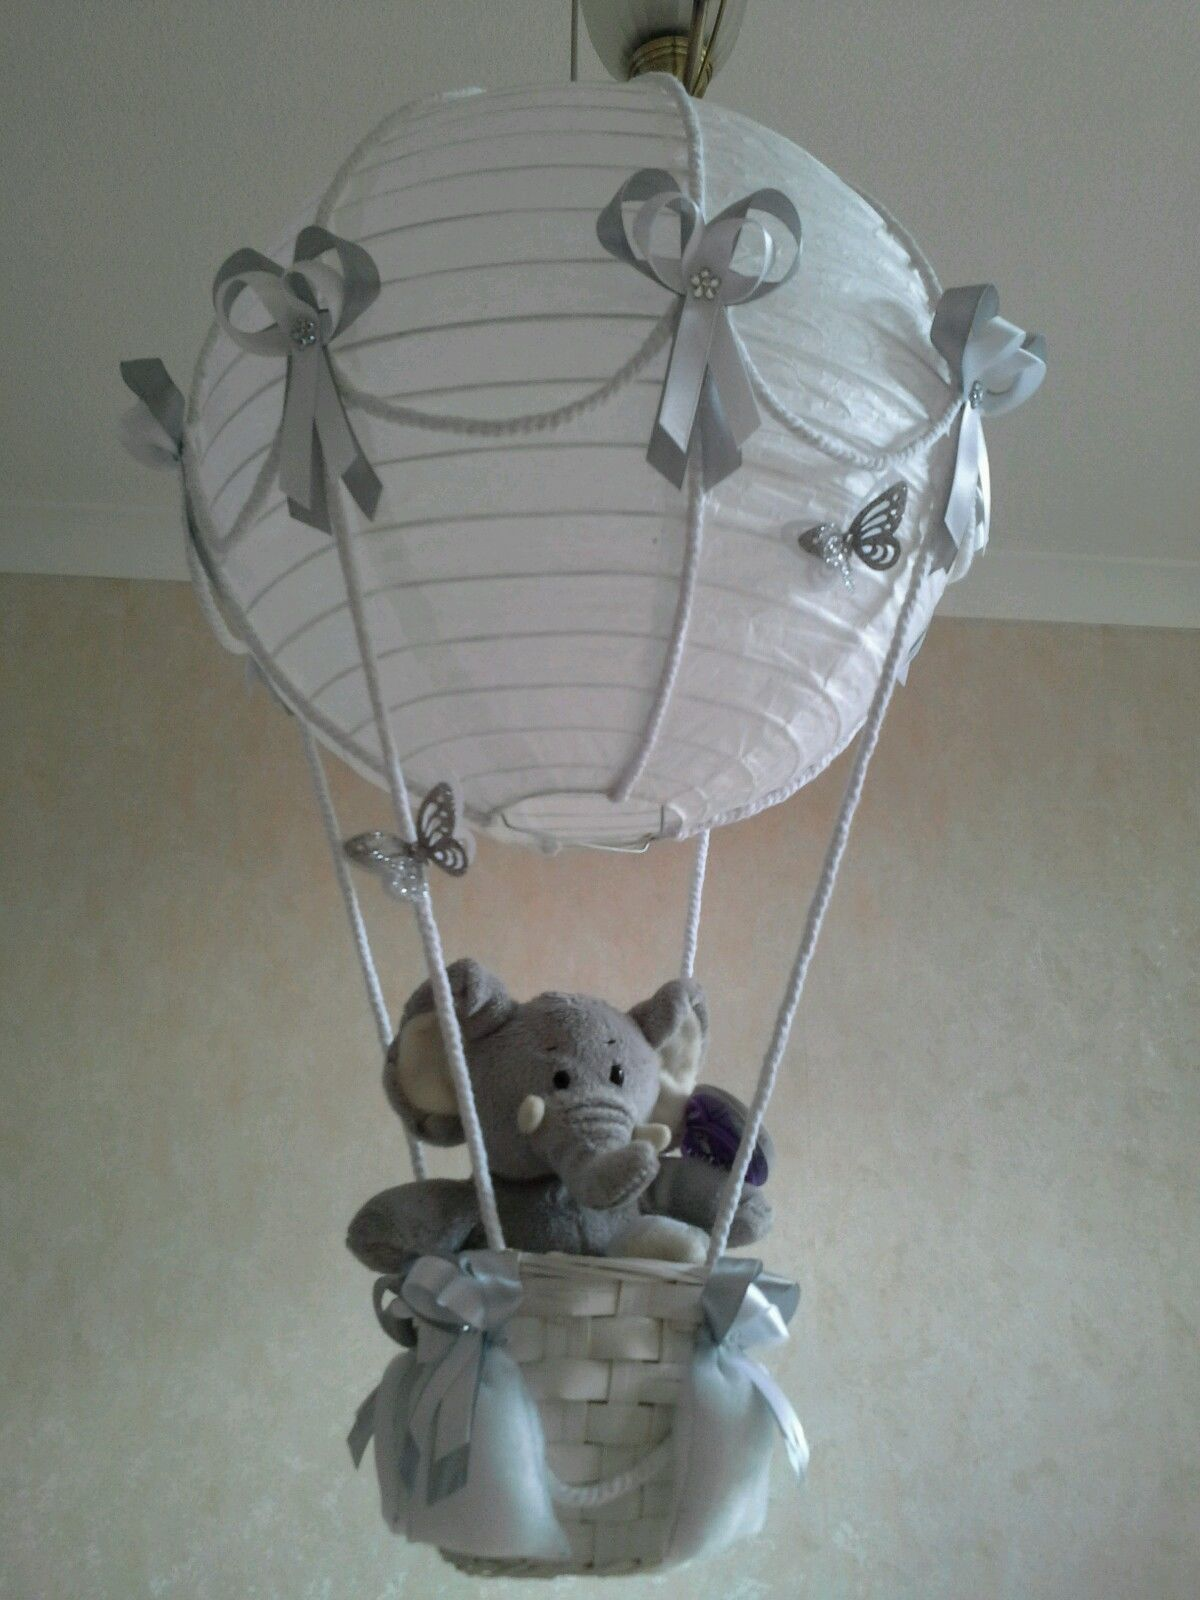 Lamps For Baby Nursery Cute Little Elephant In Hot Air Balloon Light Lamp Shade